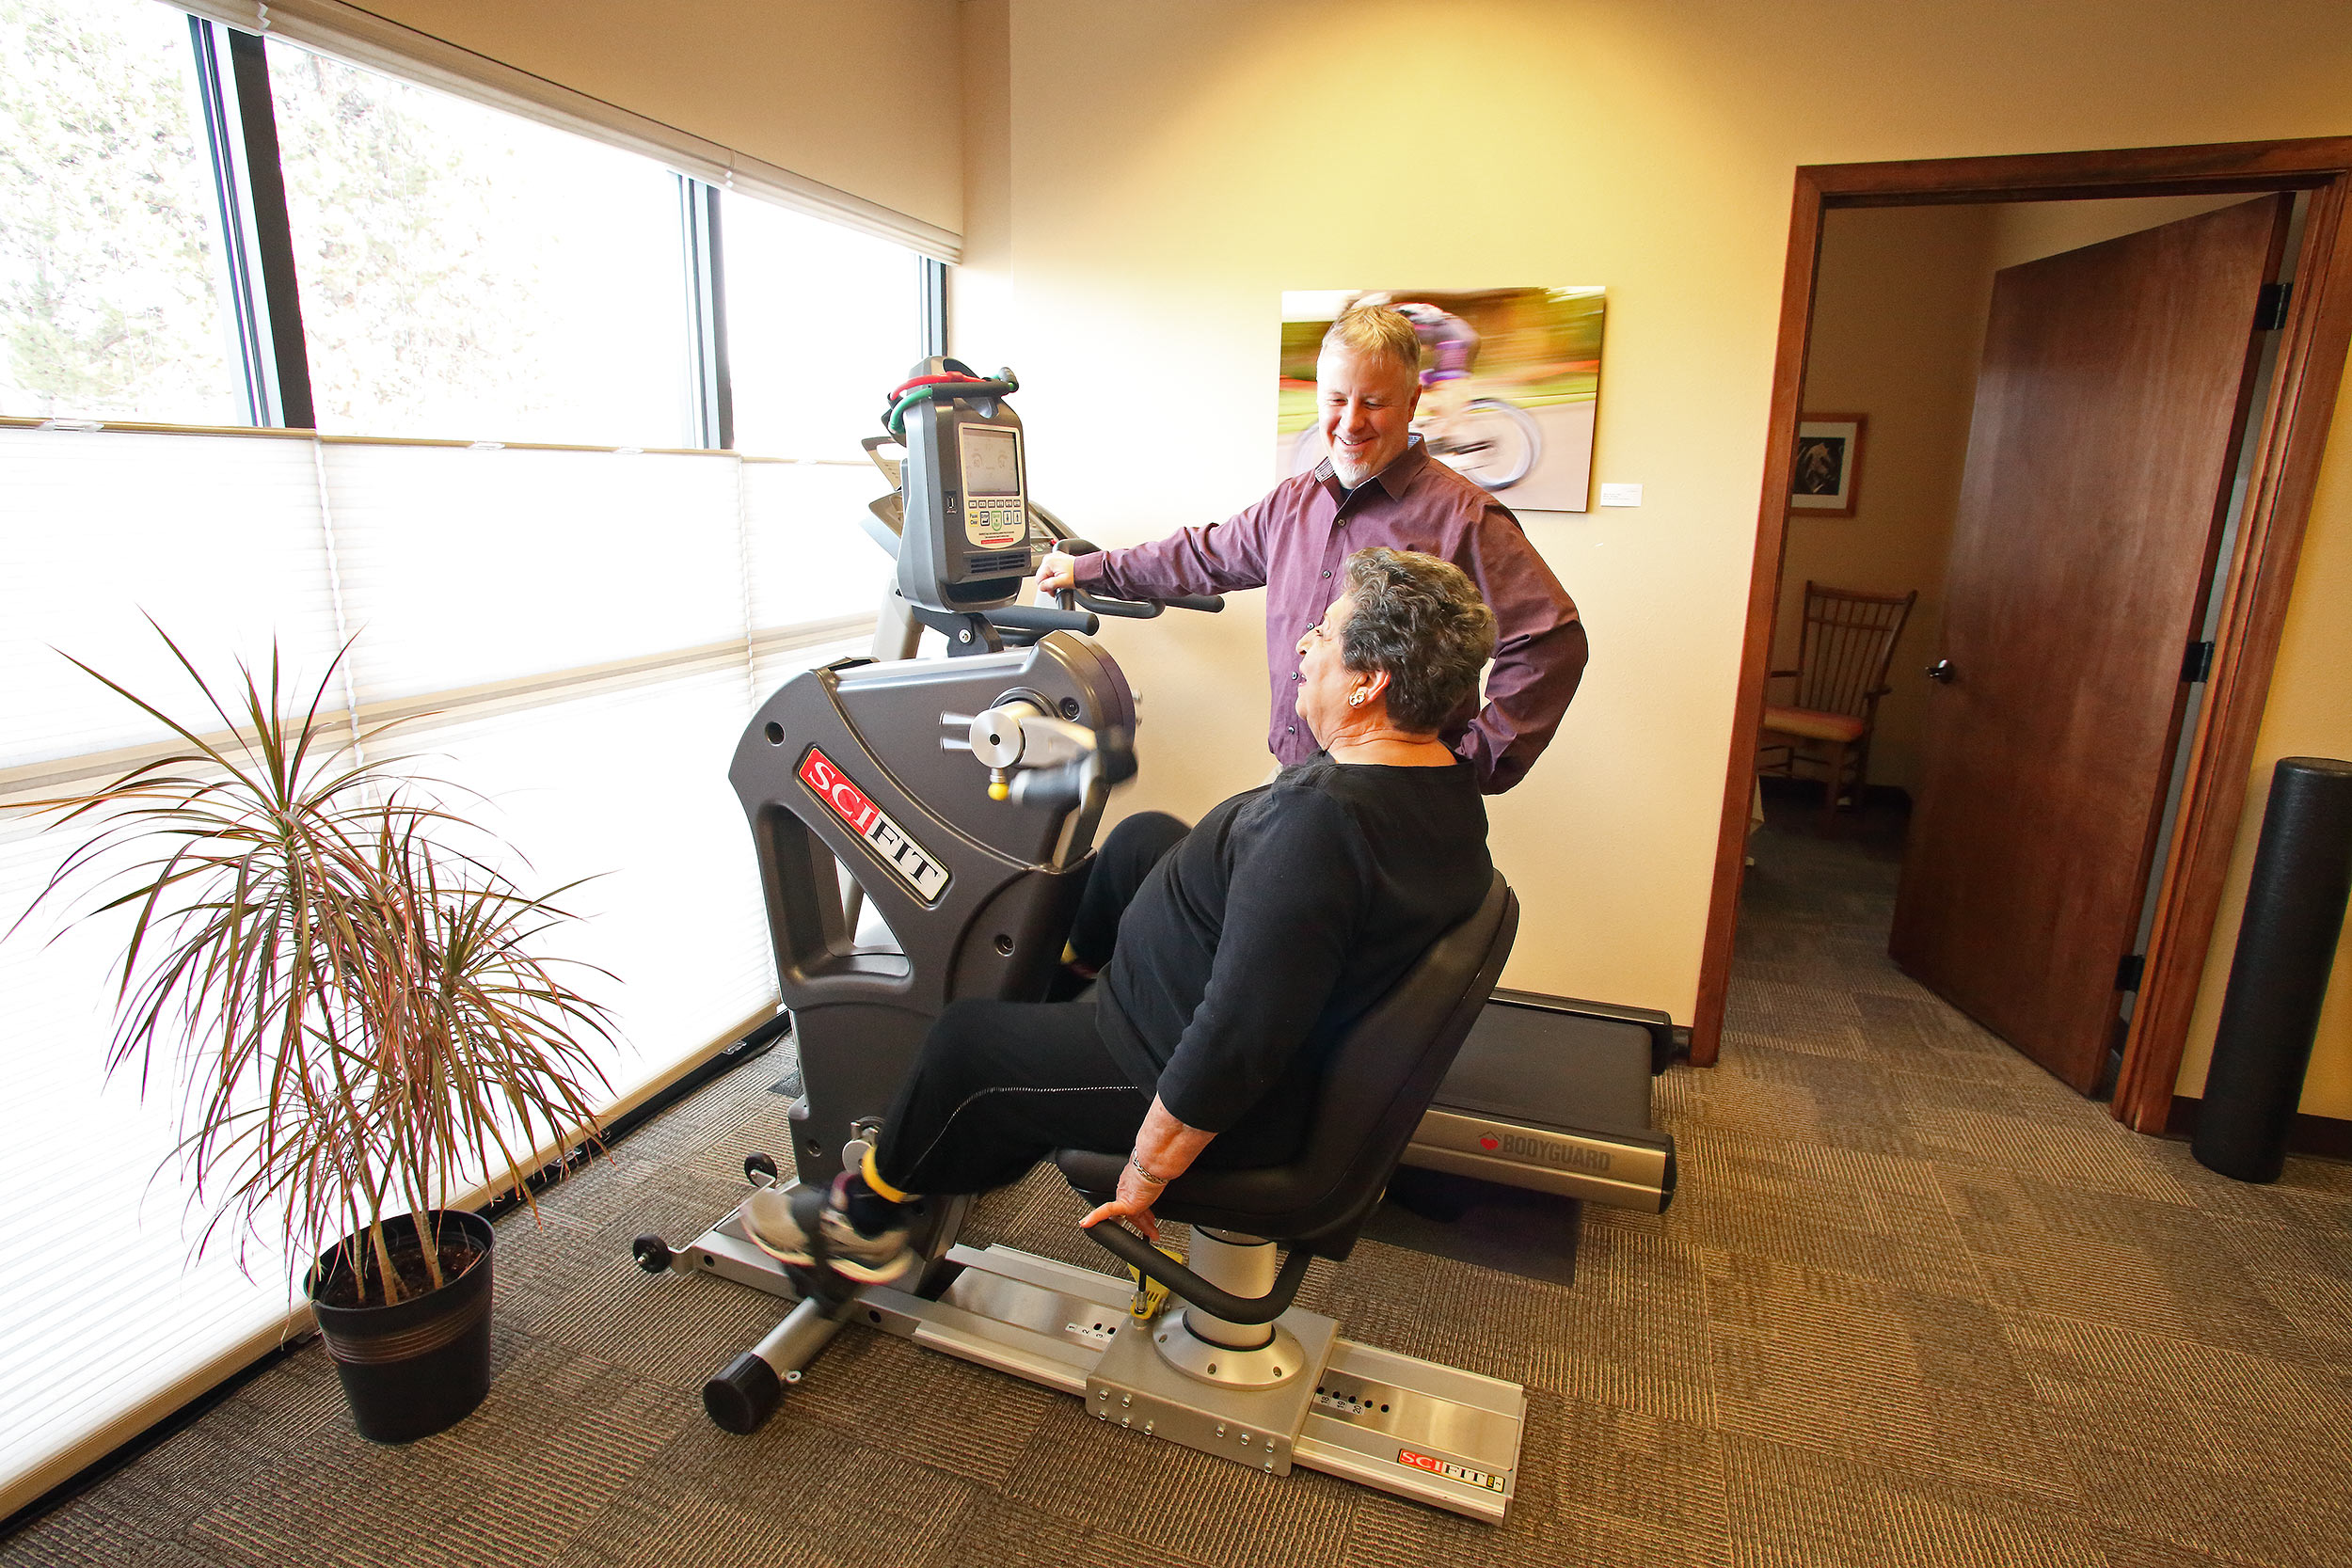 tom-and-patient-incline-cycling.jpg